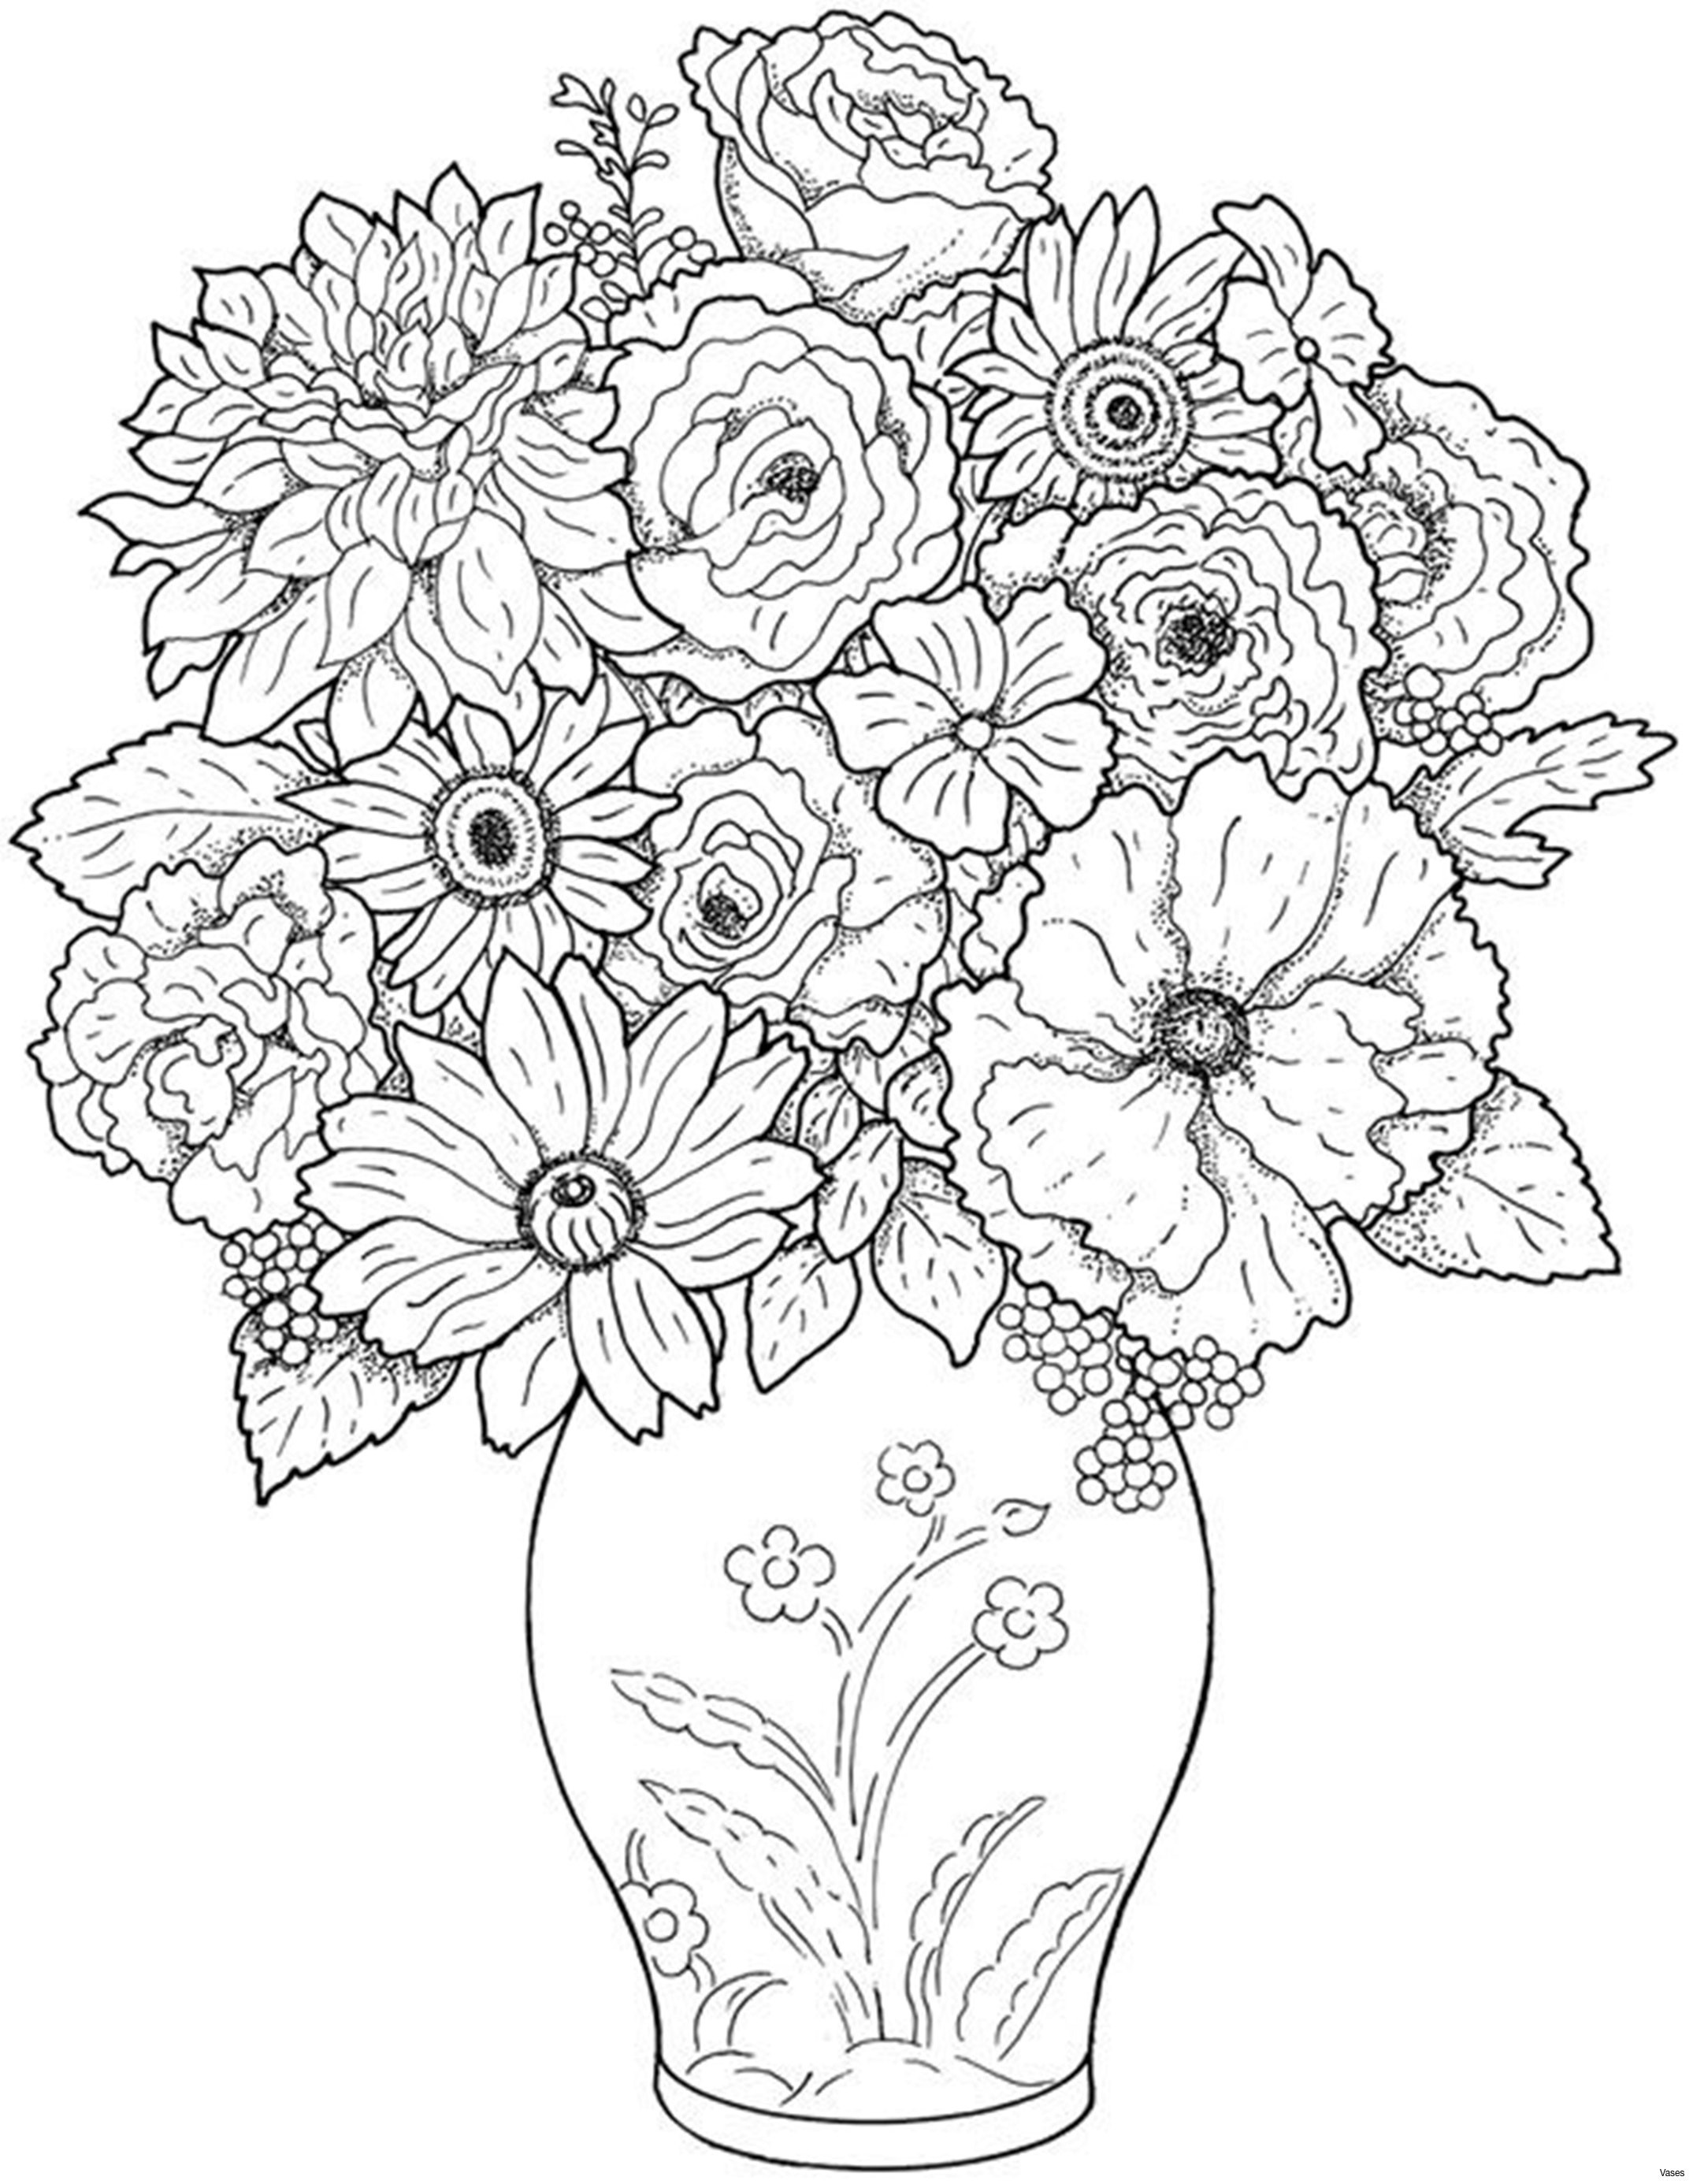 floating candle flower vases of new gray flowers yepigames me pertaining to cool vases flower vase coloring page pages flowers in a top i 0d